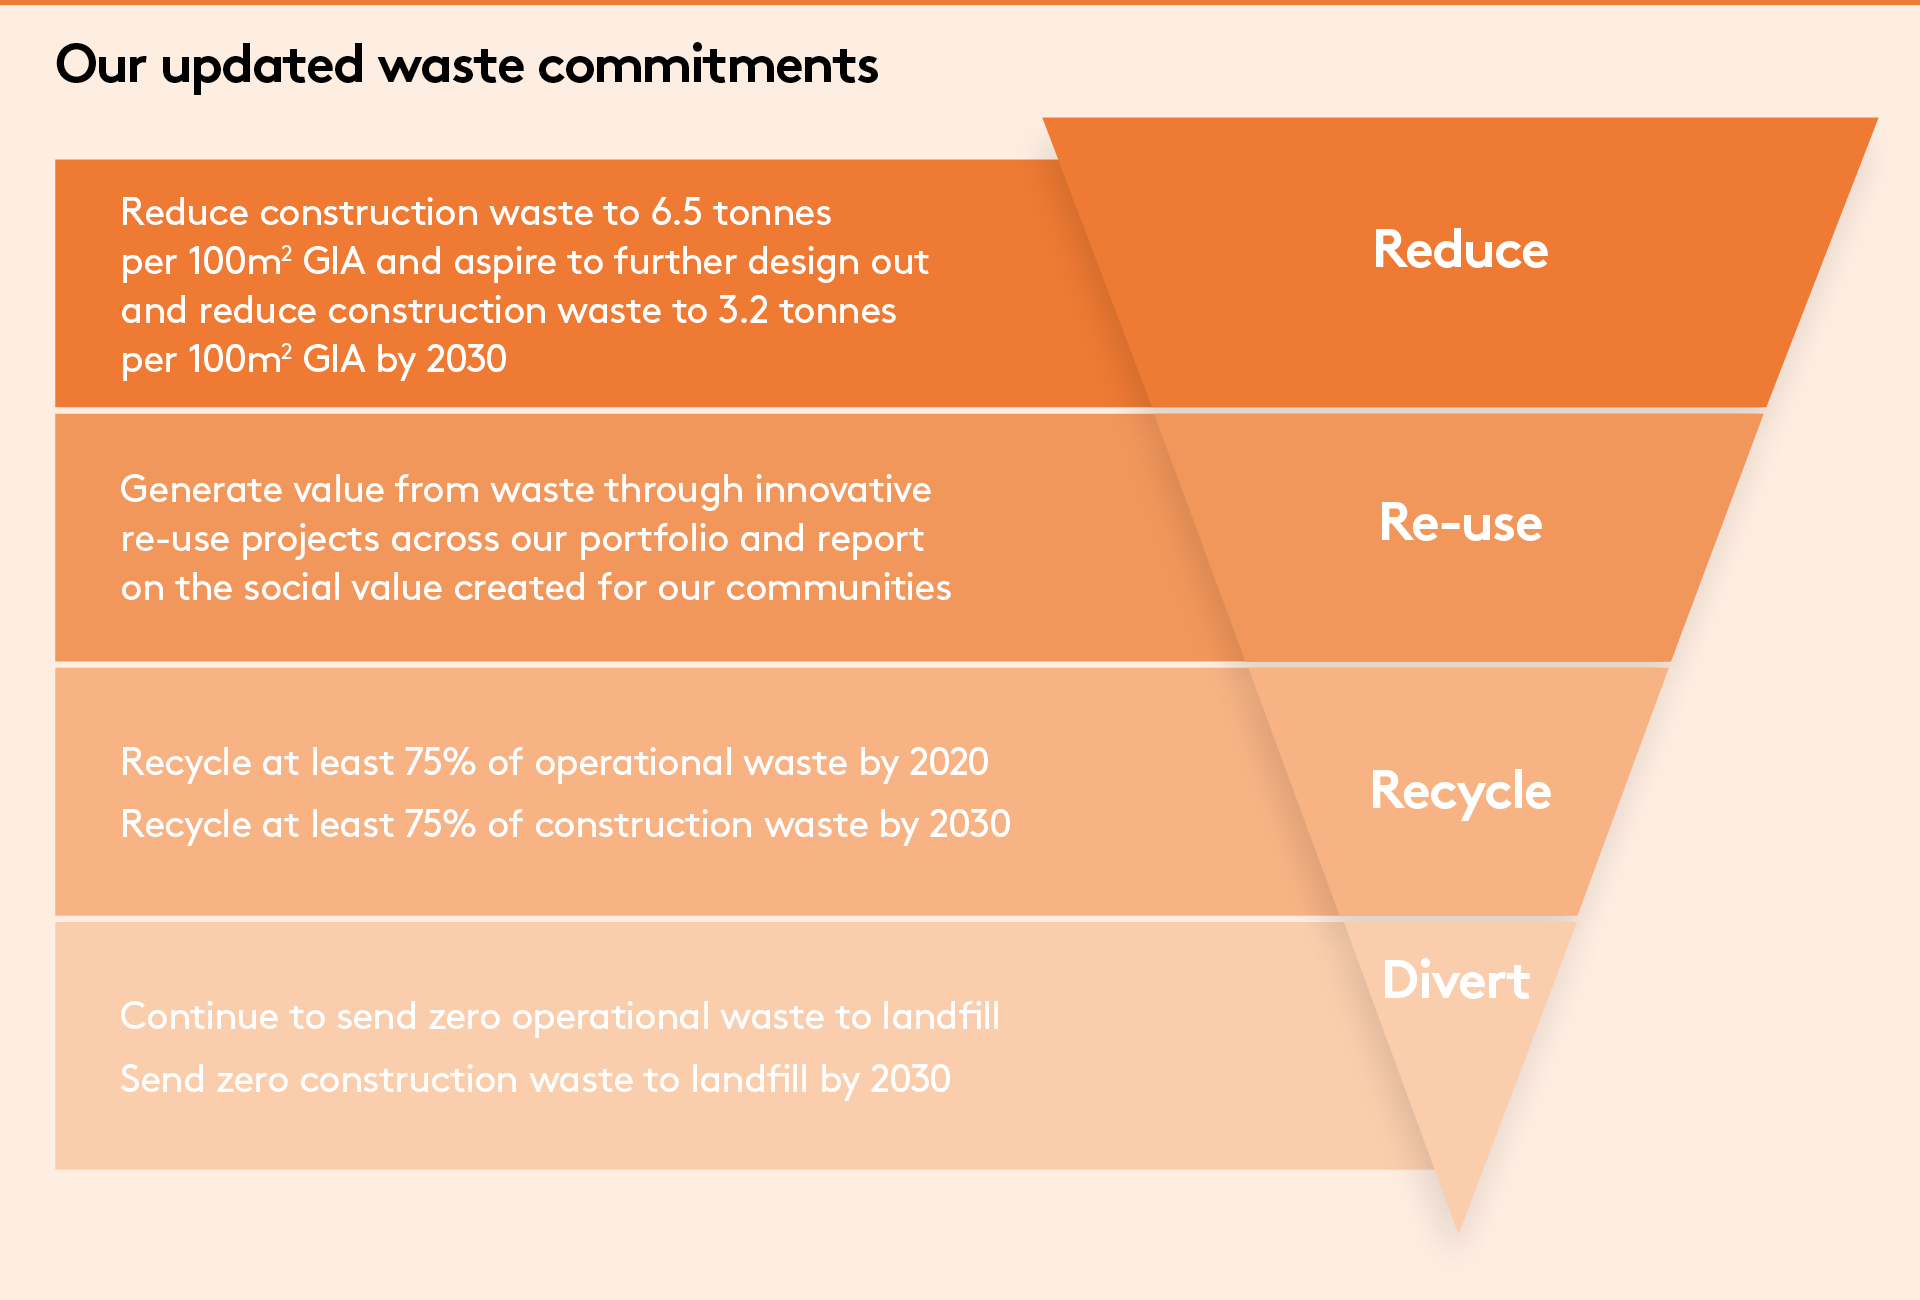 Our updated waste commitments